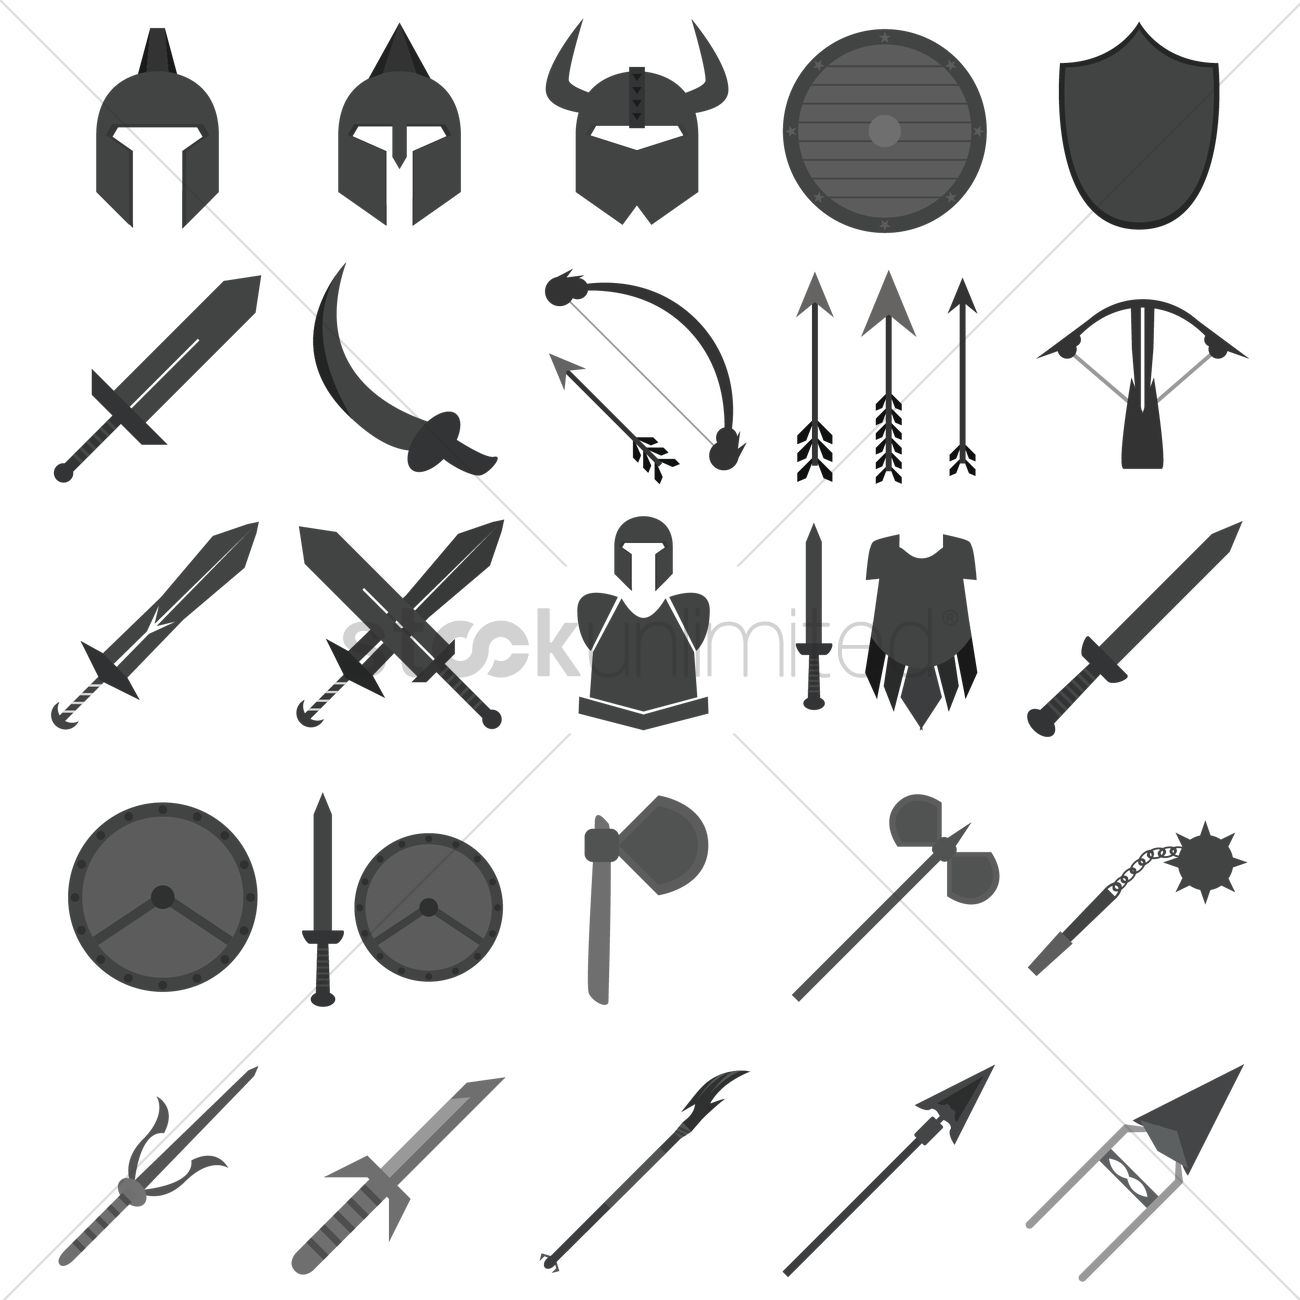 Set of fantasy icons Vector Image - 1533139 | StockUnlimited